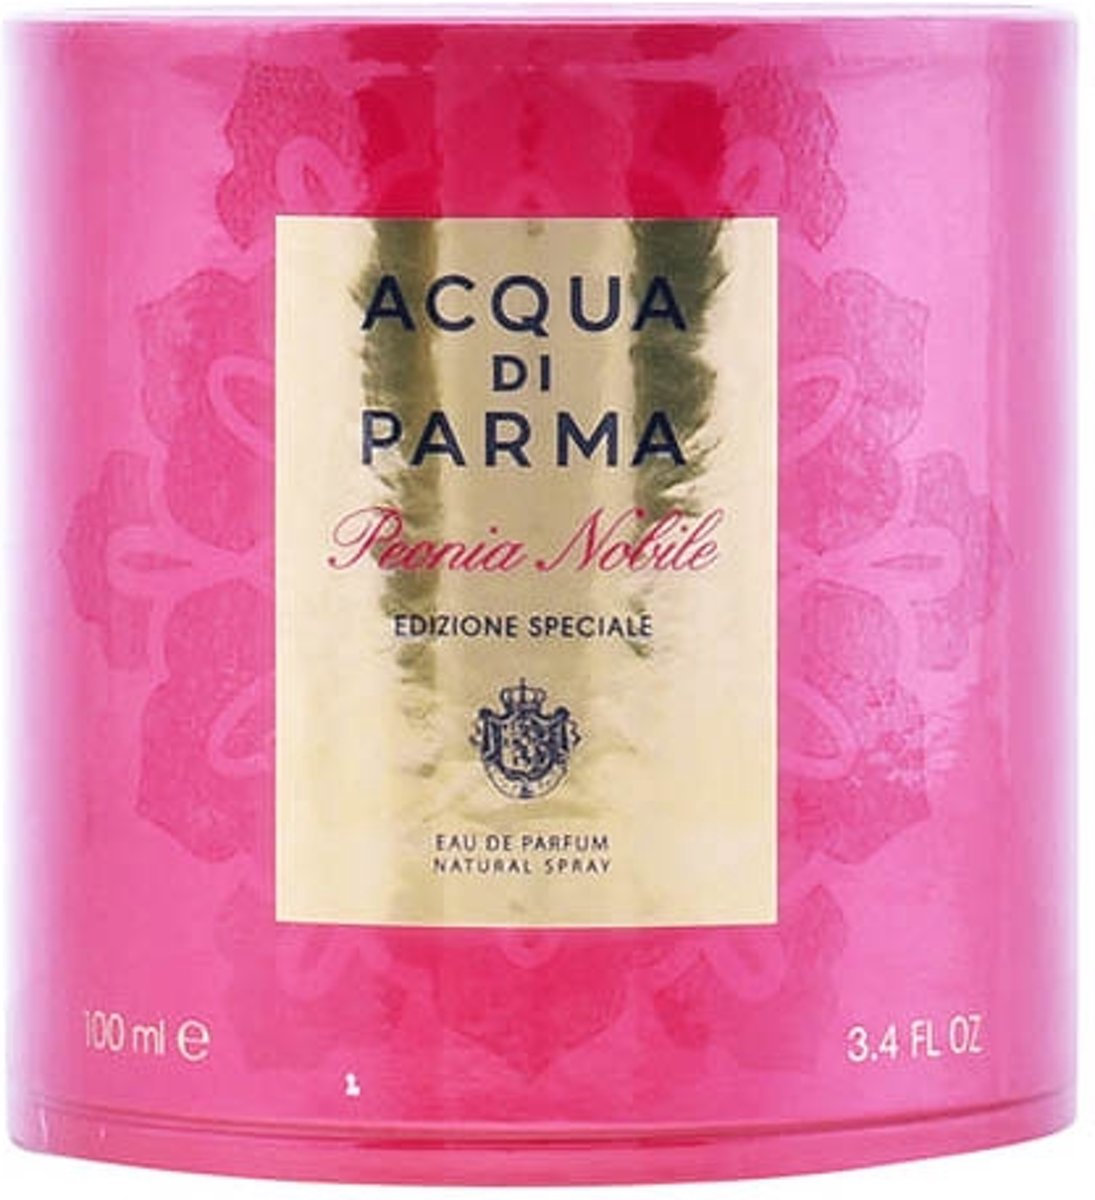 Acqua Di Parma - PEONIA NOBILE special edition edp 100 ml